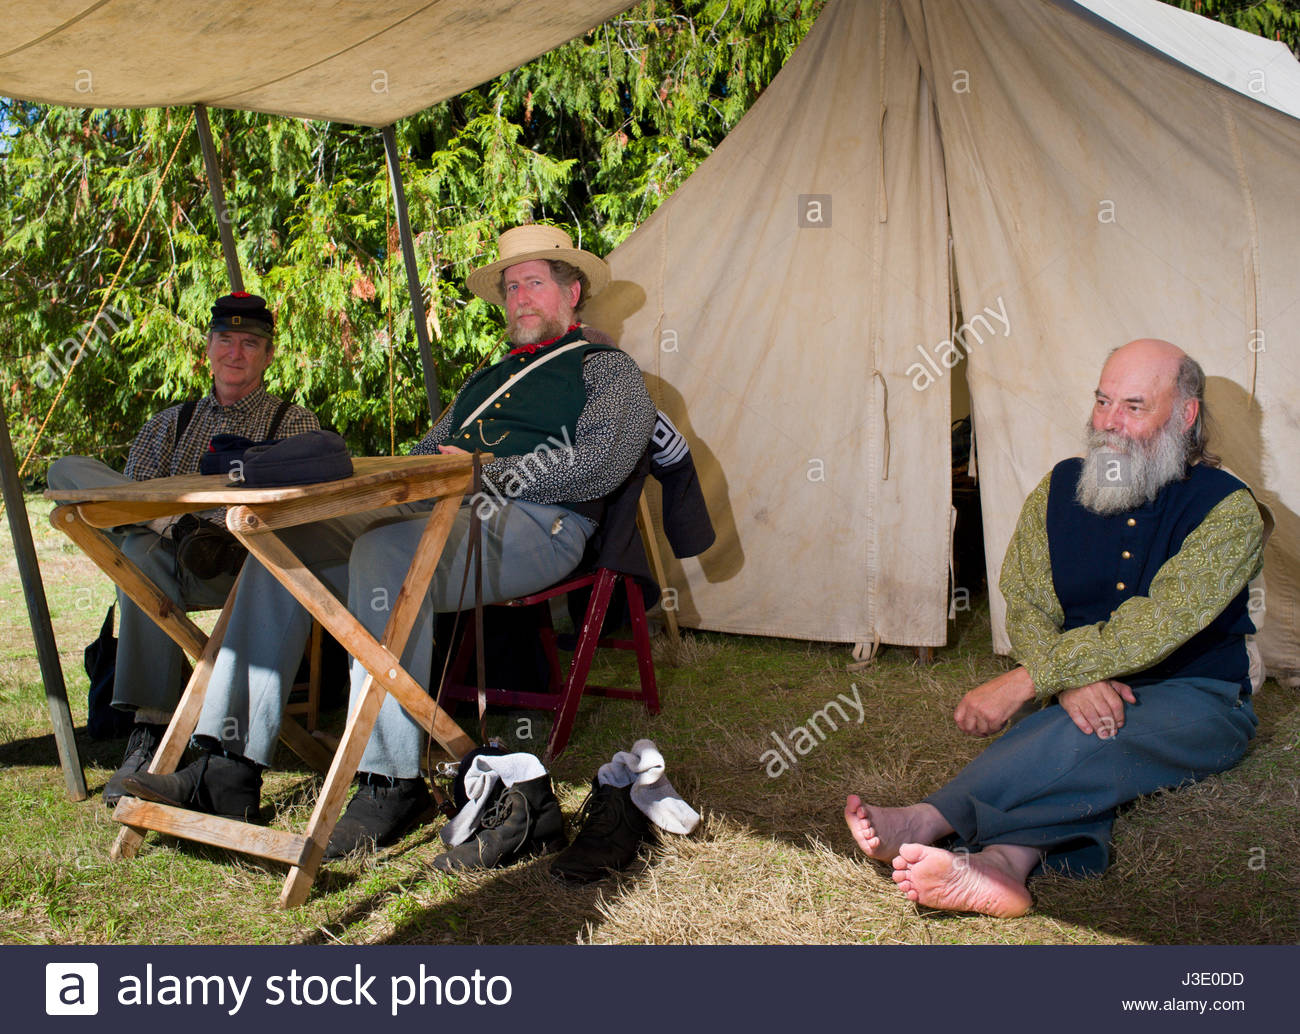 Three men sitting in the shade of a white canvas awning resting on a hot day at Civil War Reenactment, Milo McIver - Stock Image